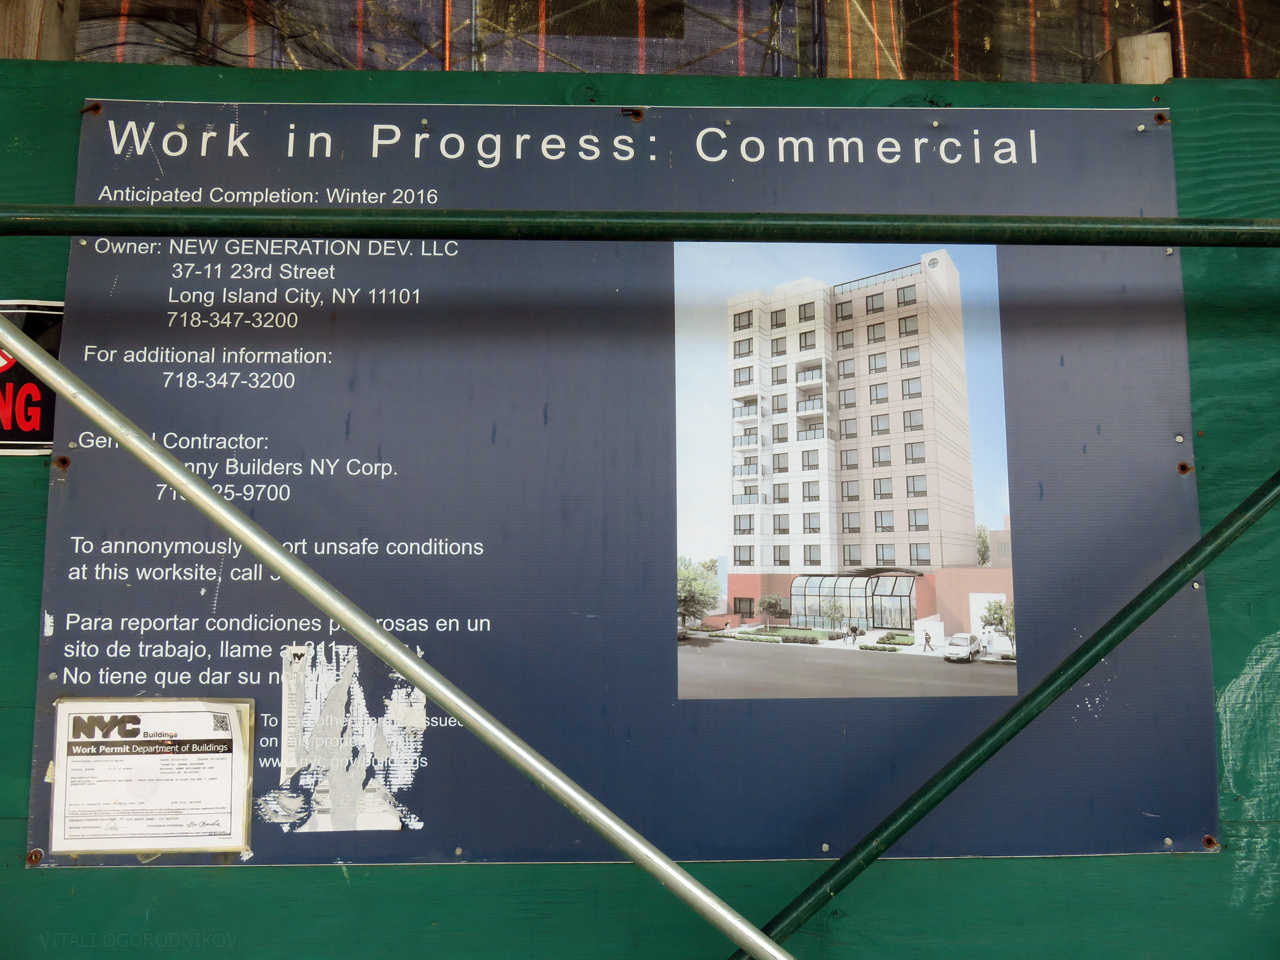 IMG_0009-37-11-23rd-Street-board-small-wmark